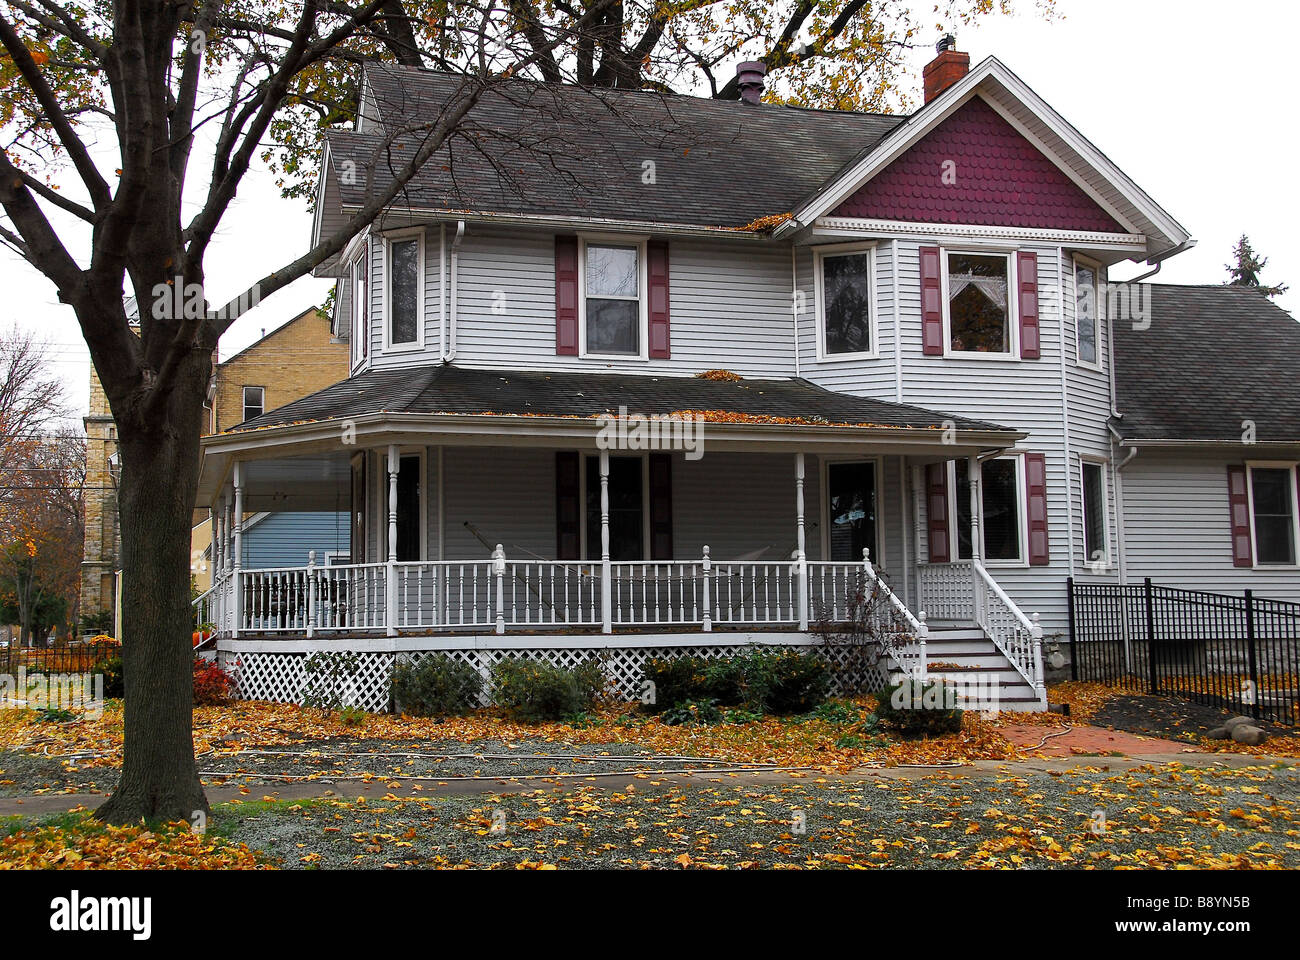 Typical american house sheridan illinois united states for The american house